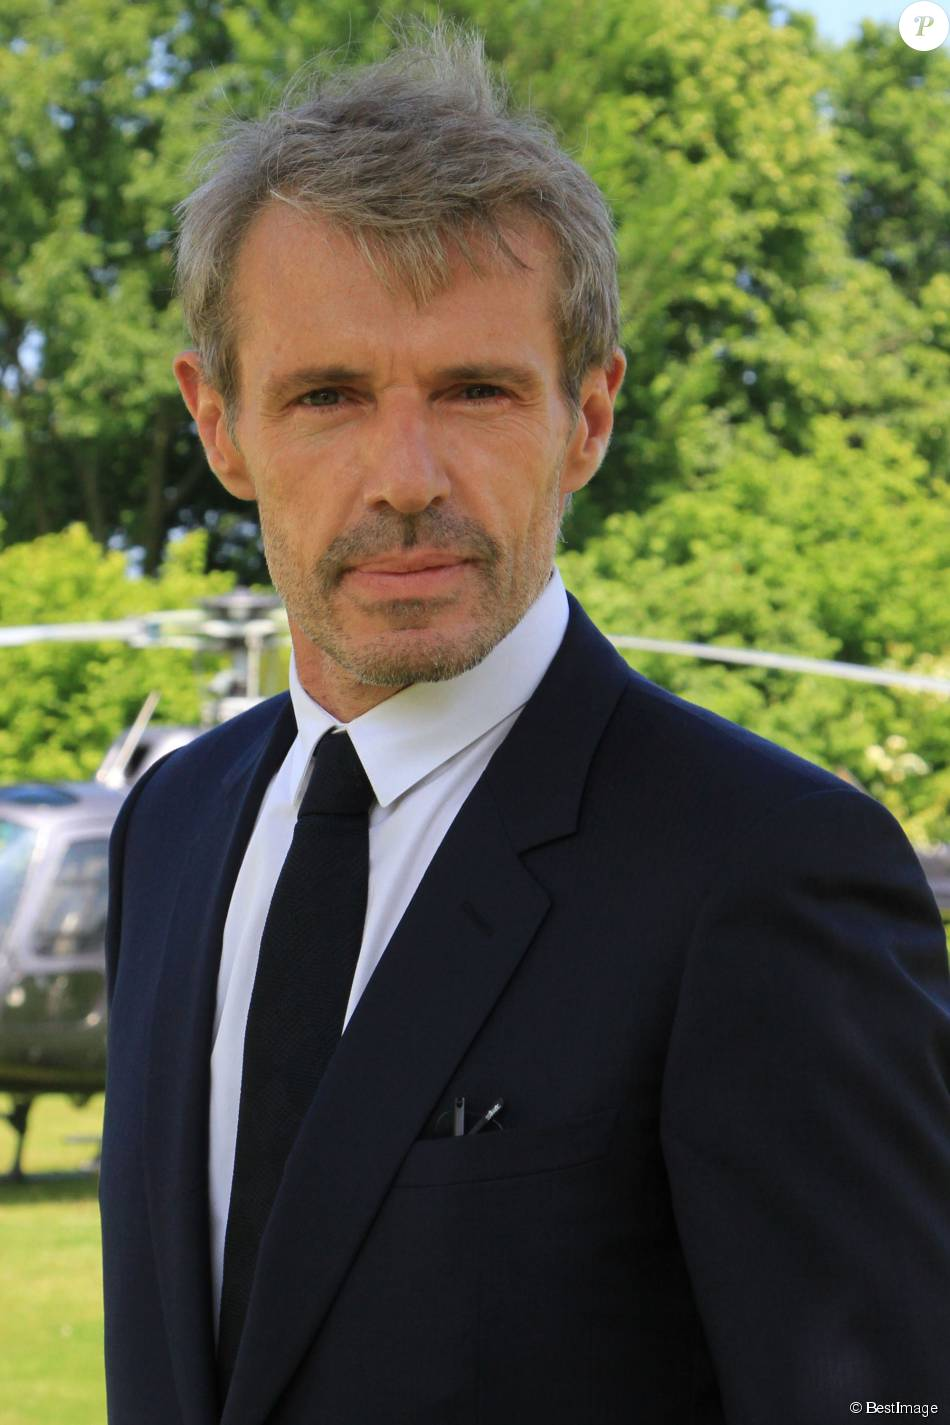 lambert wilson biographielambert wilson instagram, lambert wilson wife, lambert wilson young, lambert wilson matrix, lambert wilson filmographie, lambert wilson films, lambert wilson suite francaise, lambert wilson et son copain, lambert wilson monica bellucci, lambert wilson odyssey, lambert wilson la bicyclette, lambert wilson tumblr, lambert wilson nevers, lambert wilson sahara, lambert wilson vie privee, lambert wilson biographie, lambert wilson imdb, lambert wilson english, lambert wilson anglais, lambert wilson movies